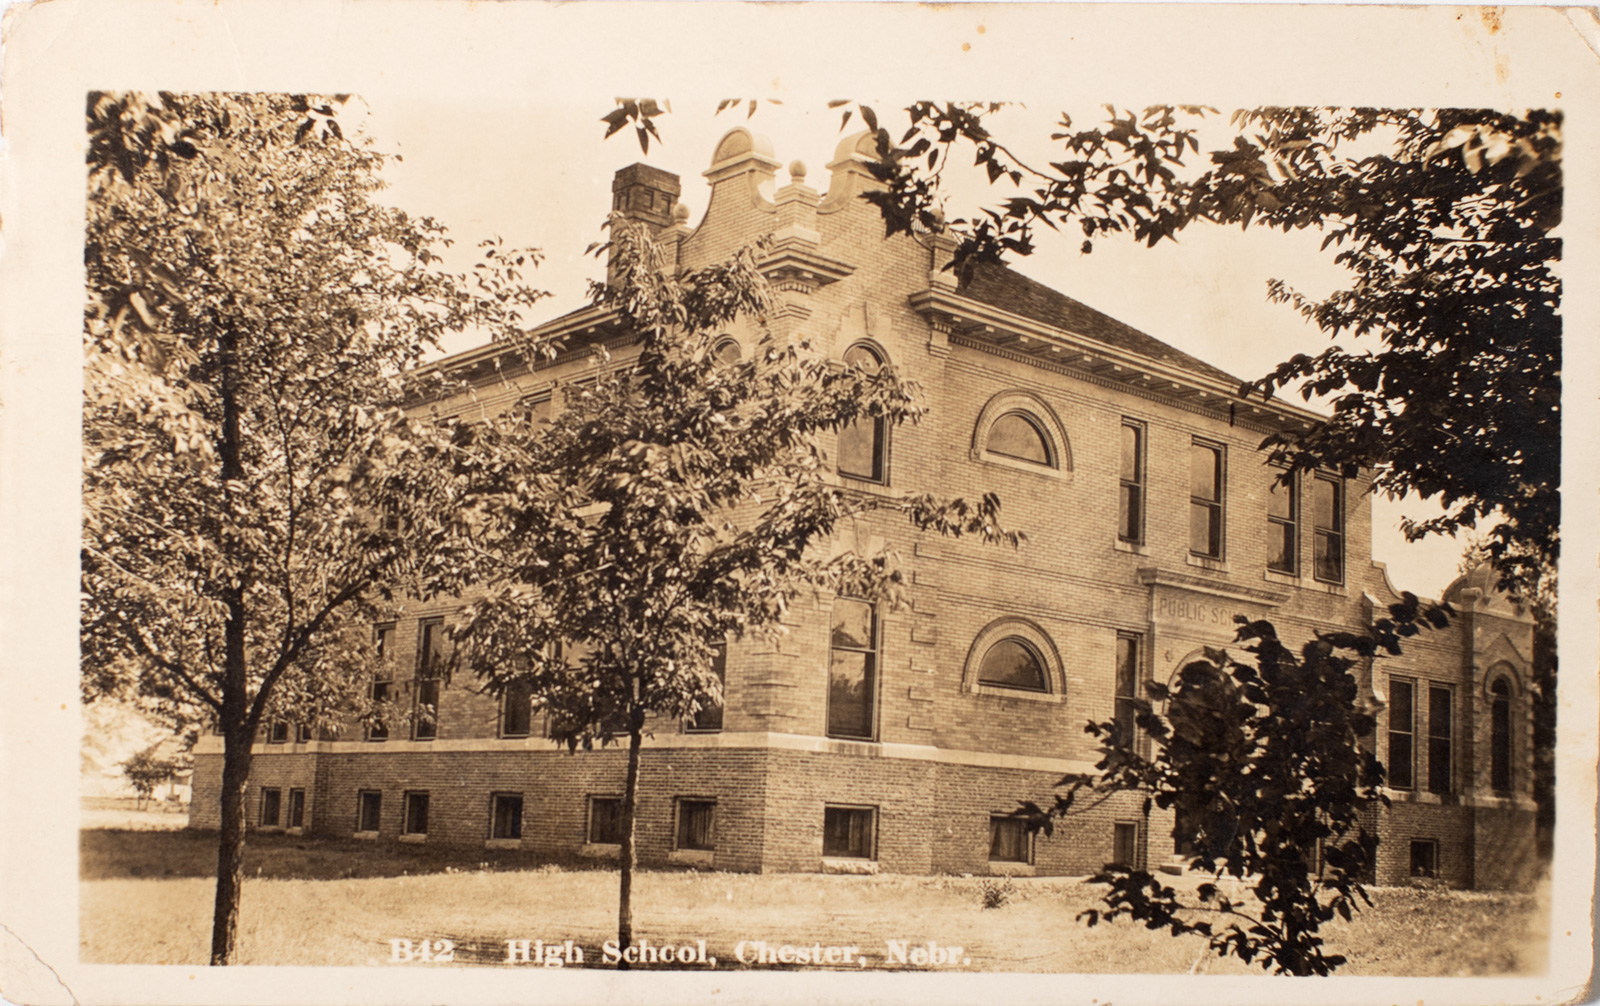 Chester Nebraska School Building 1907 Postcard Image